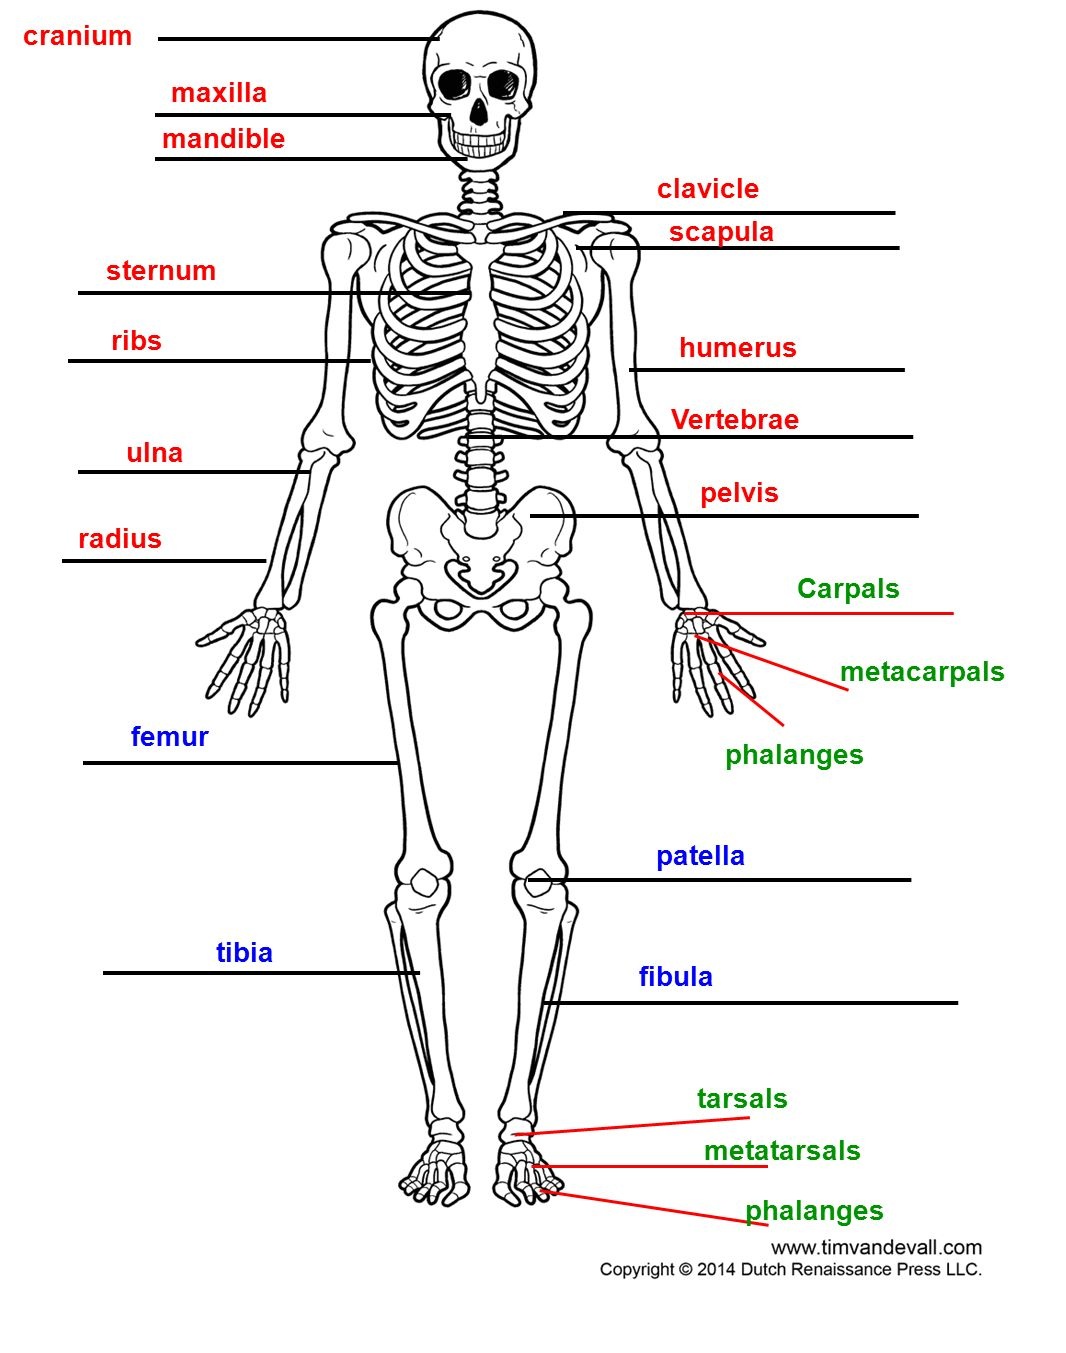 Cells Tissue Skeletal Organs Bones System The Skeletal System